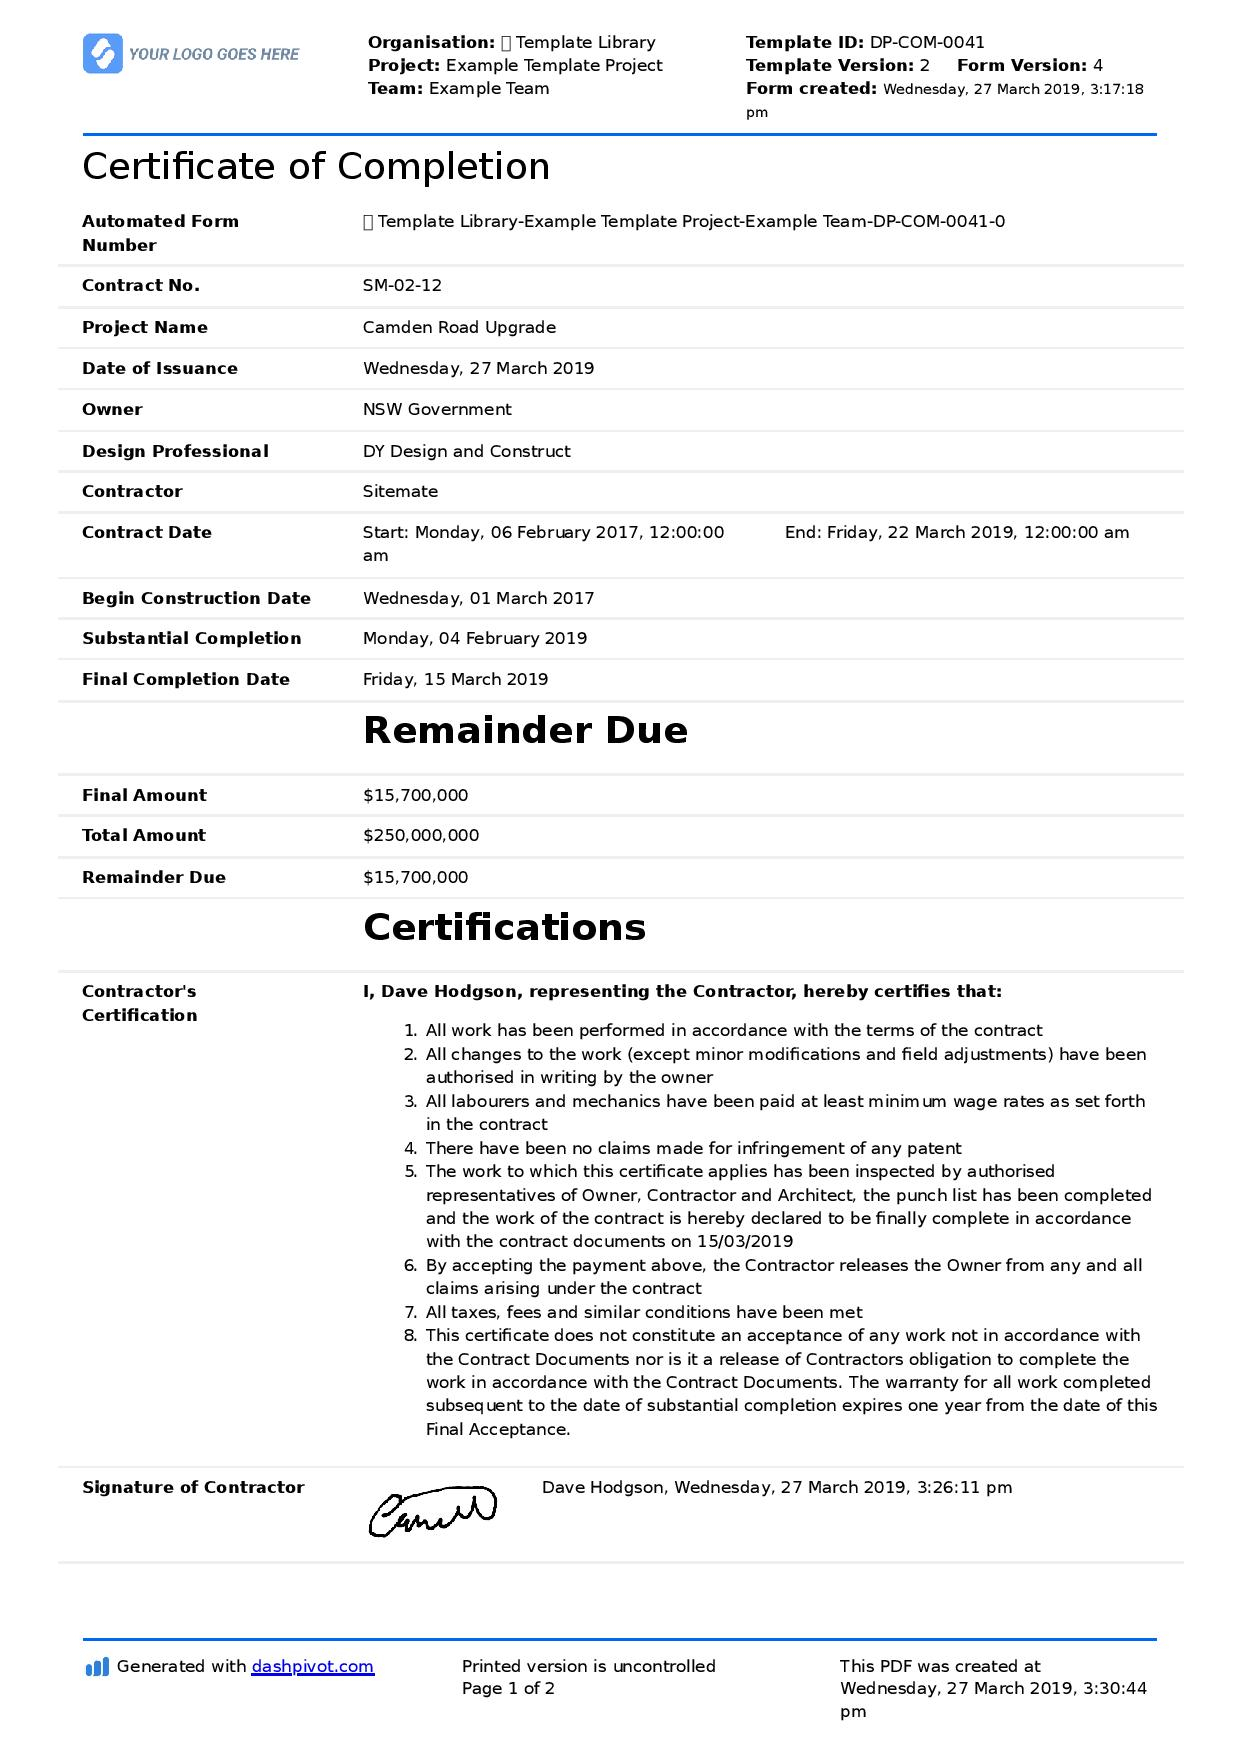 Certificate Of Completion For Construction (Free Template + Within Certificate Of Completion Template Construction